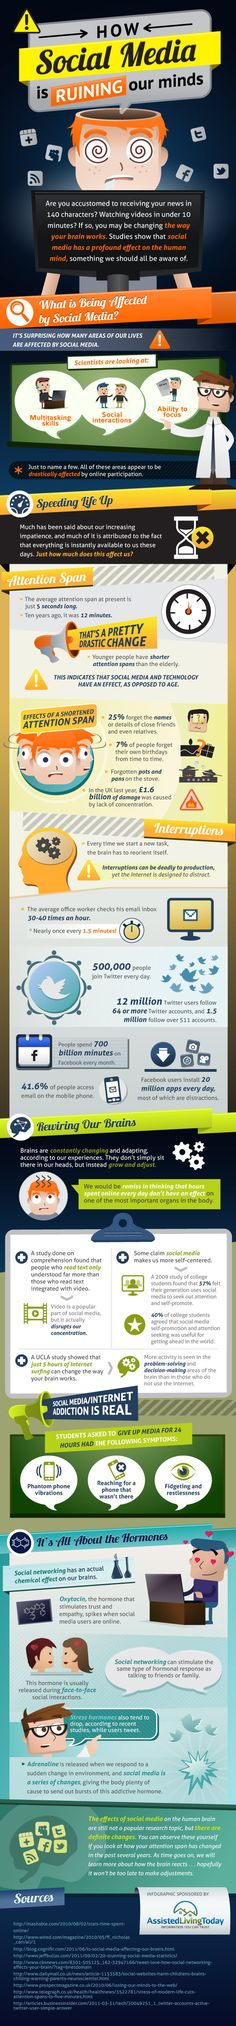 How Social Media Impacts Our Attention Average Attention Span Statistics and Trends